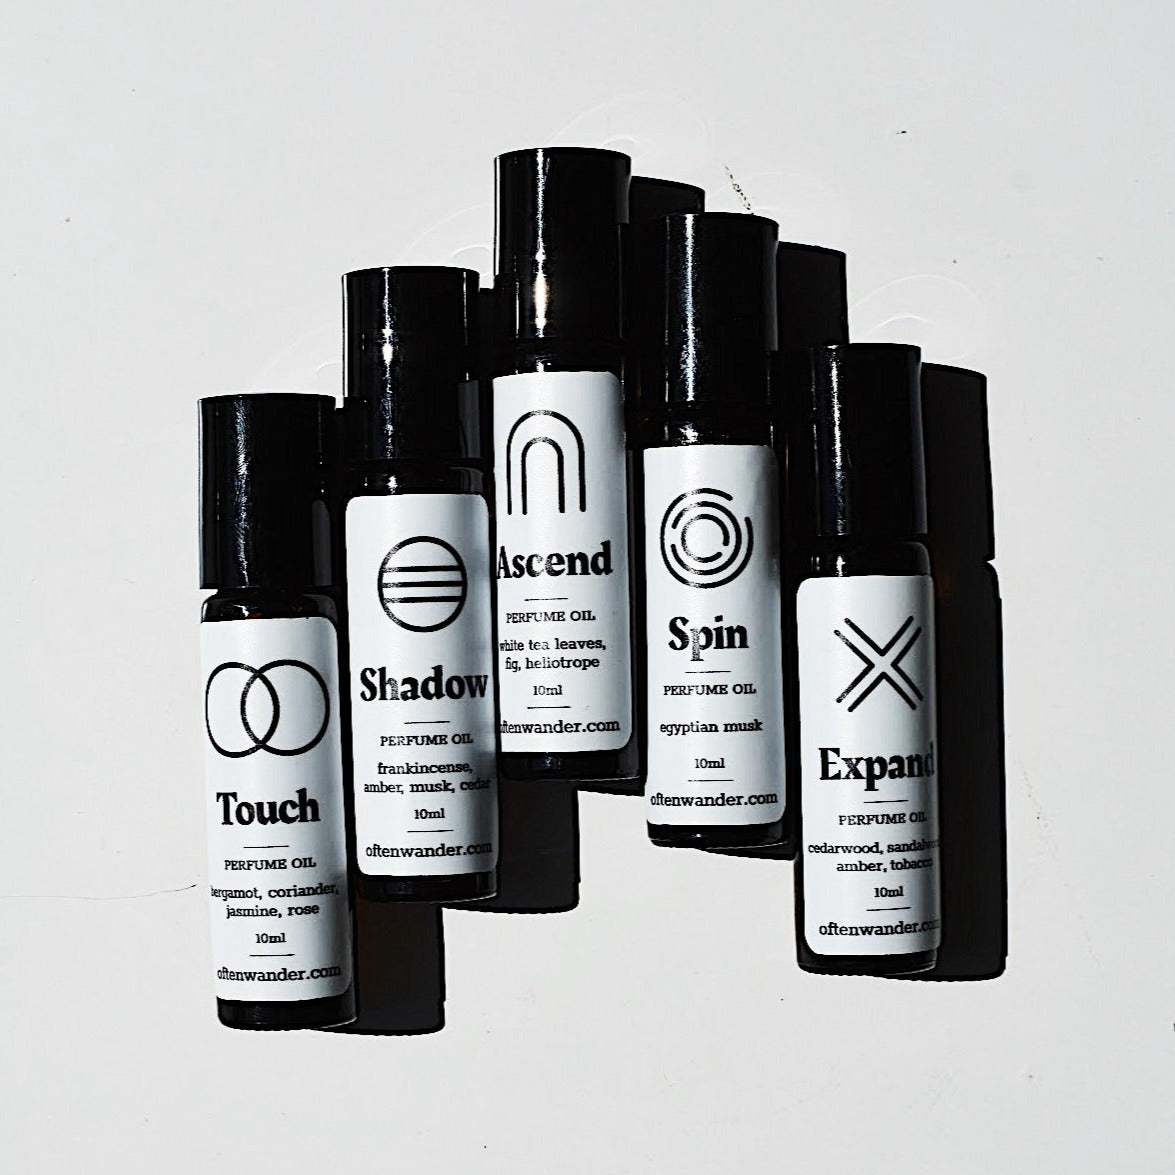 New! Ascend — Roll On Perfume